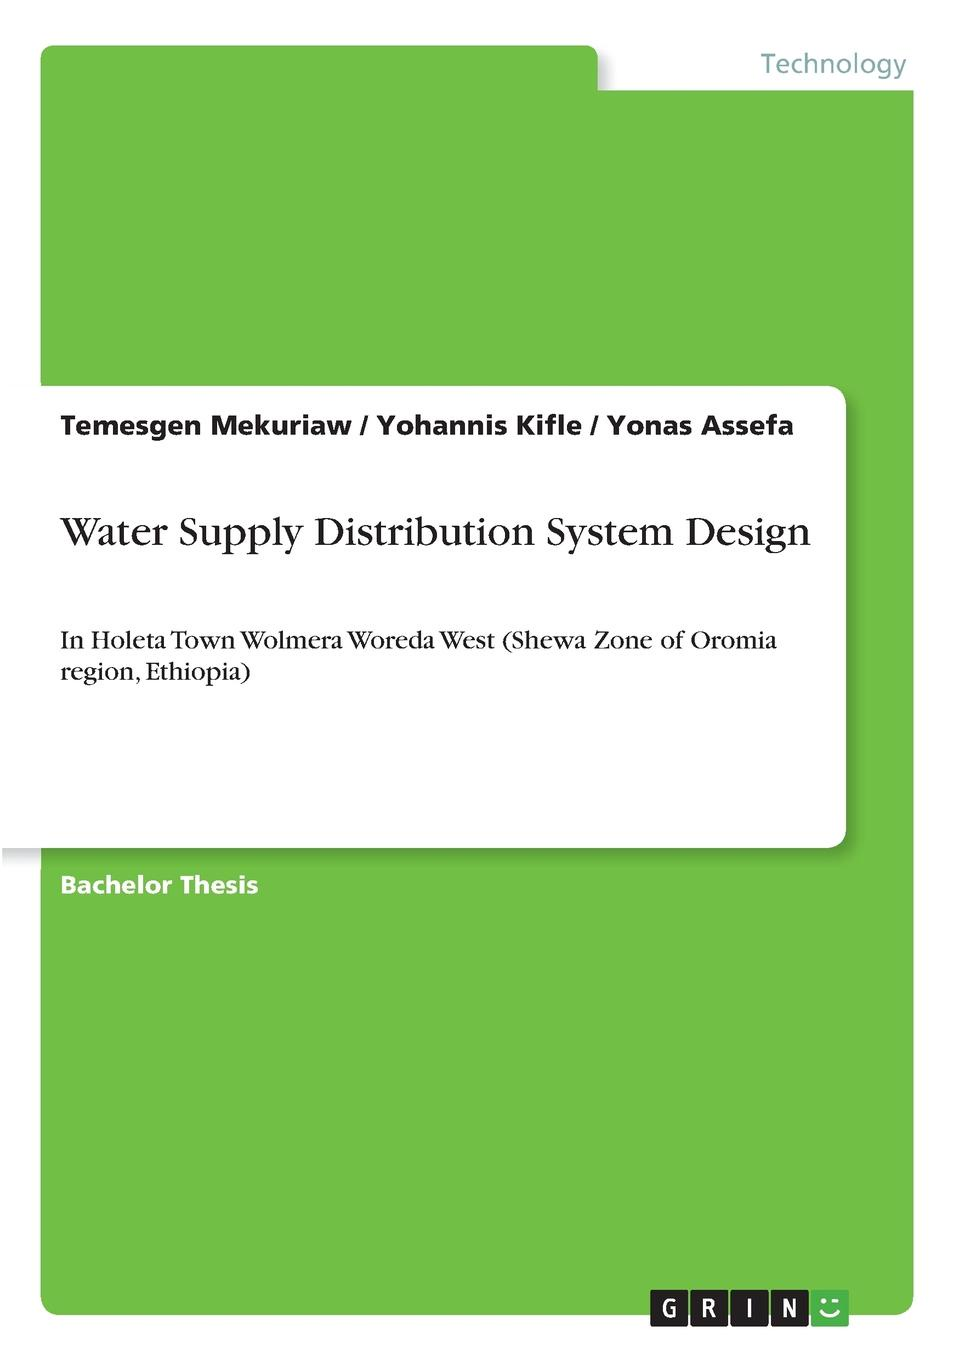 Temesgen Mekuriaw, Yohannis Kifle, Yonas Assefa Water Supply Distribution System Design voeller john g water safety and water infrastructure security